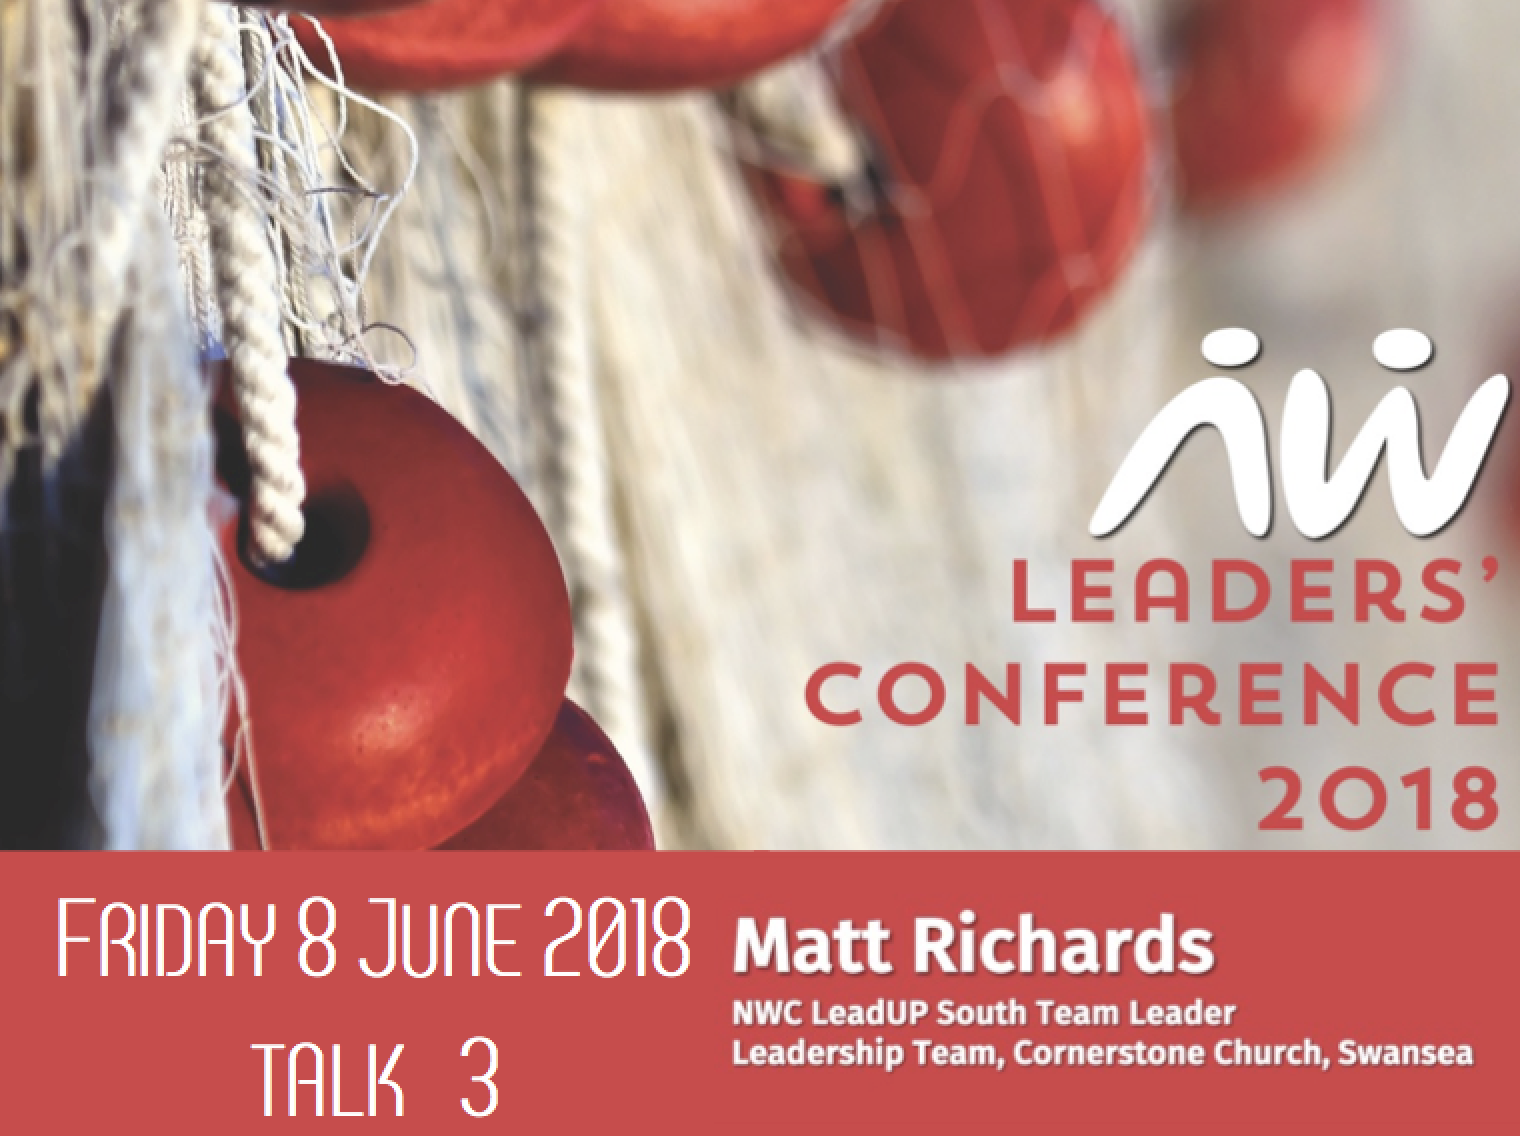 Leaders' Conference 18: Matt Richards talk